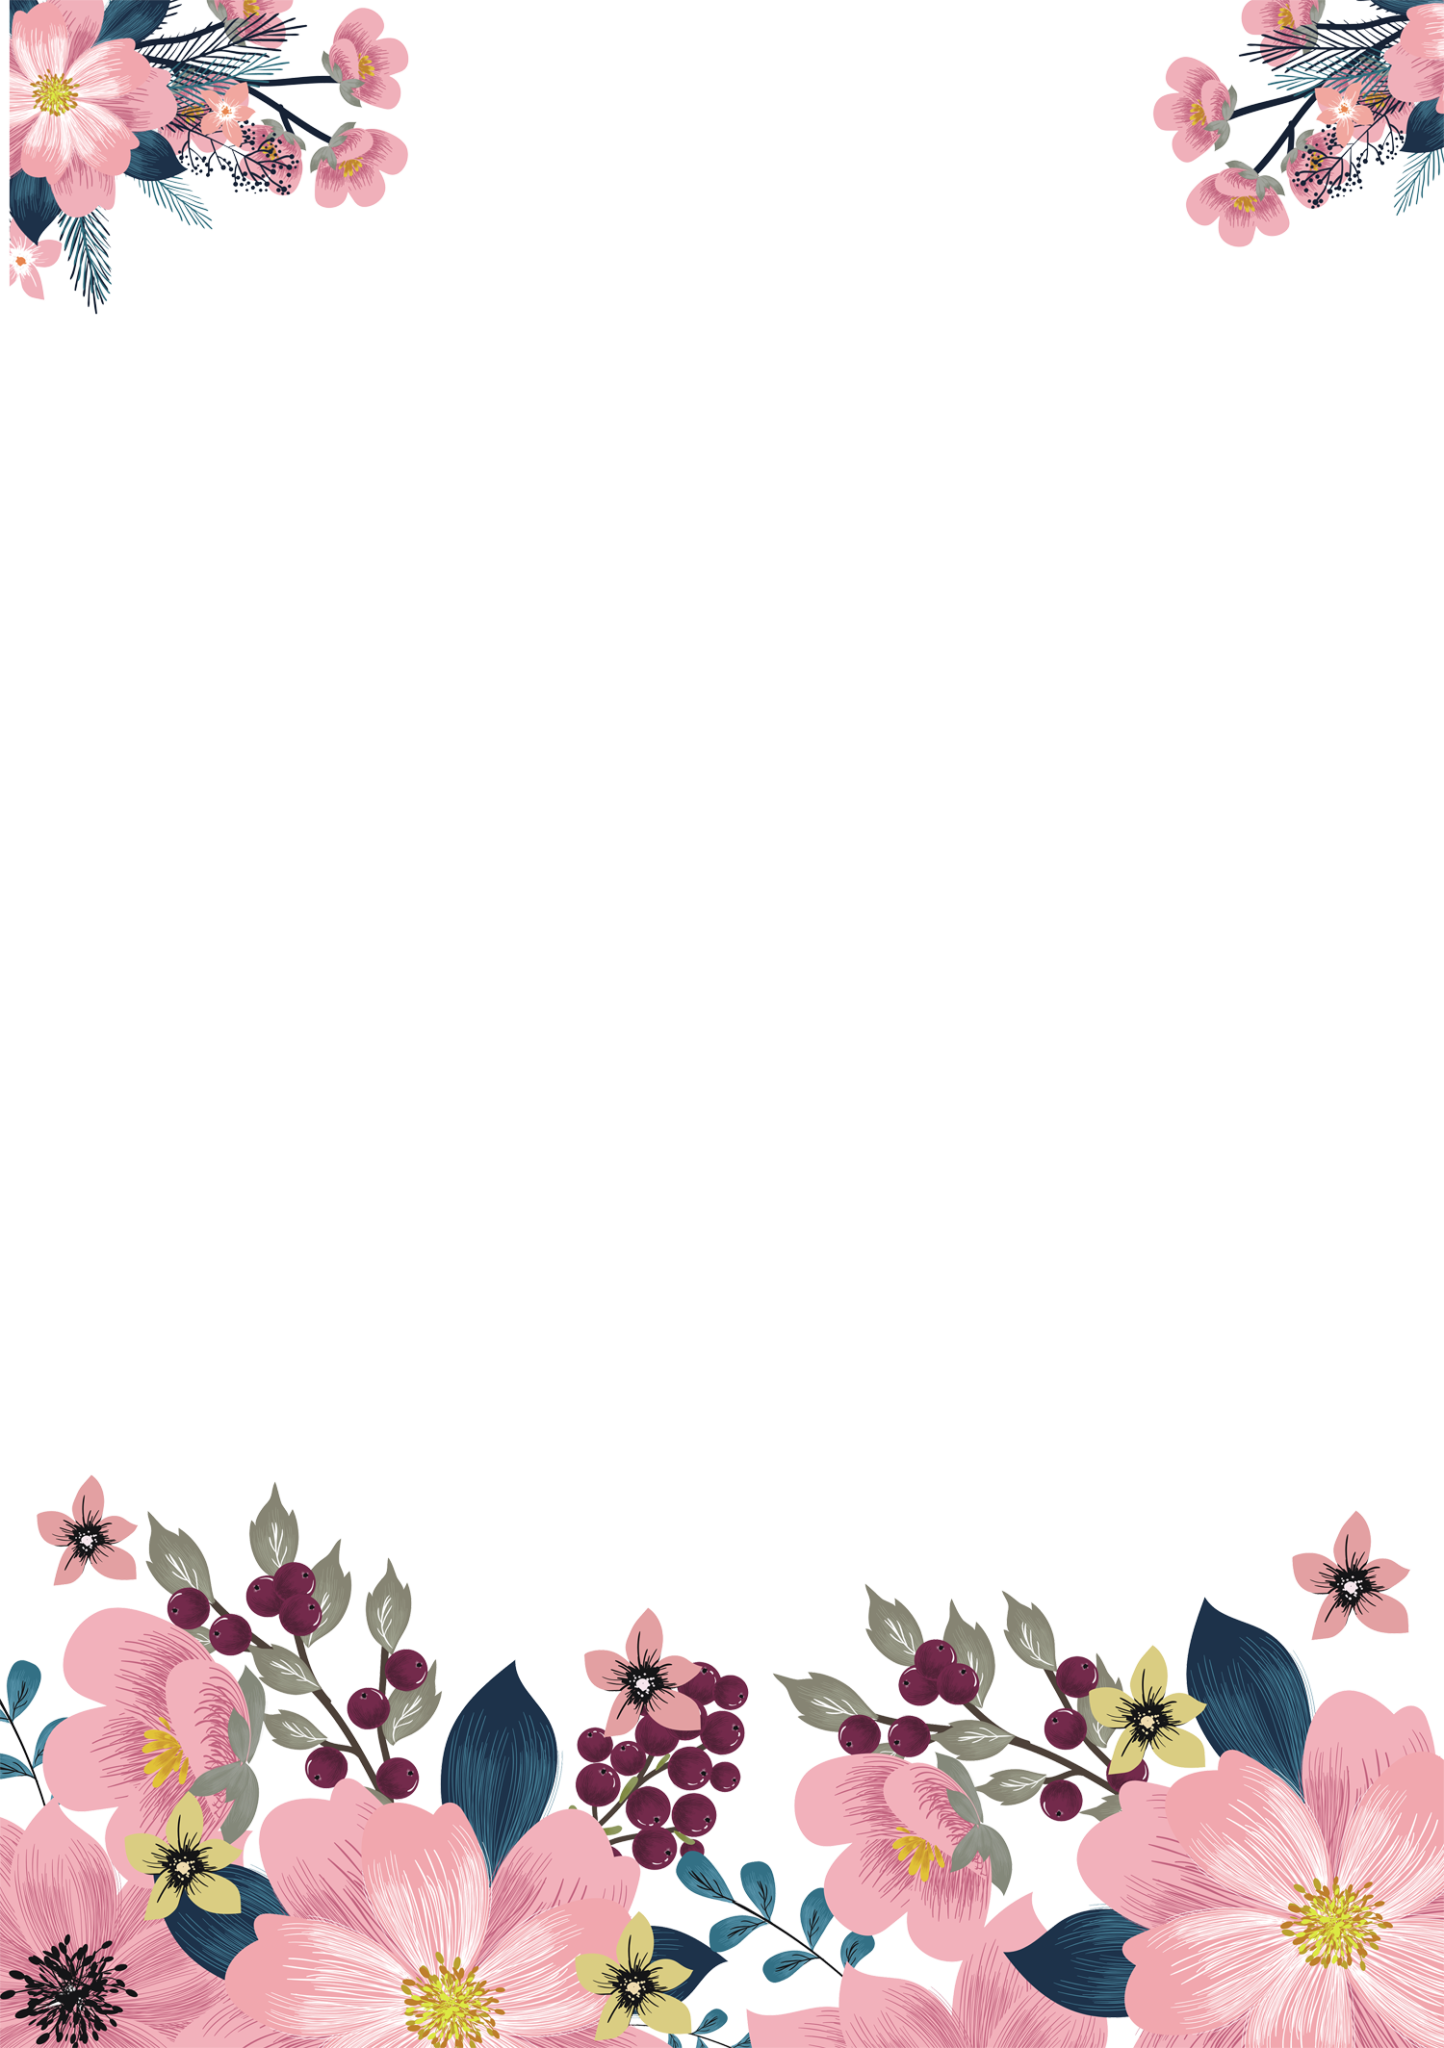 Free flowers download . Flower png watercolor image freeuse library